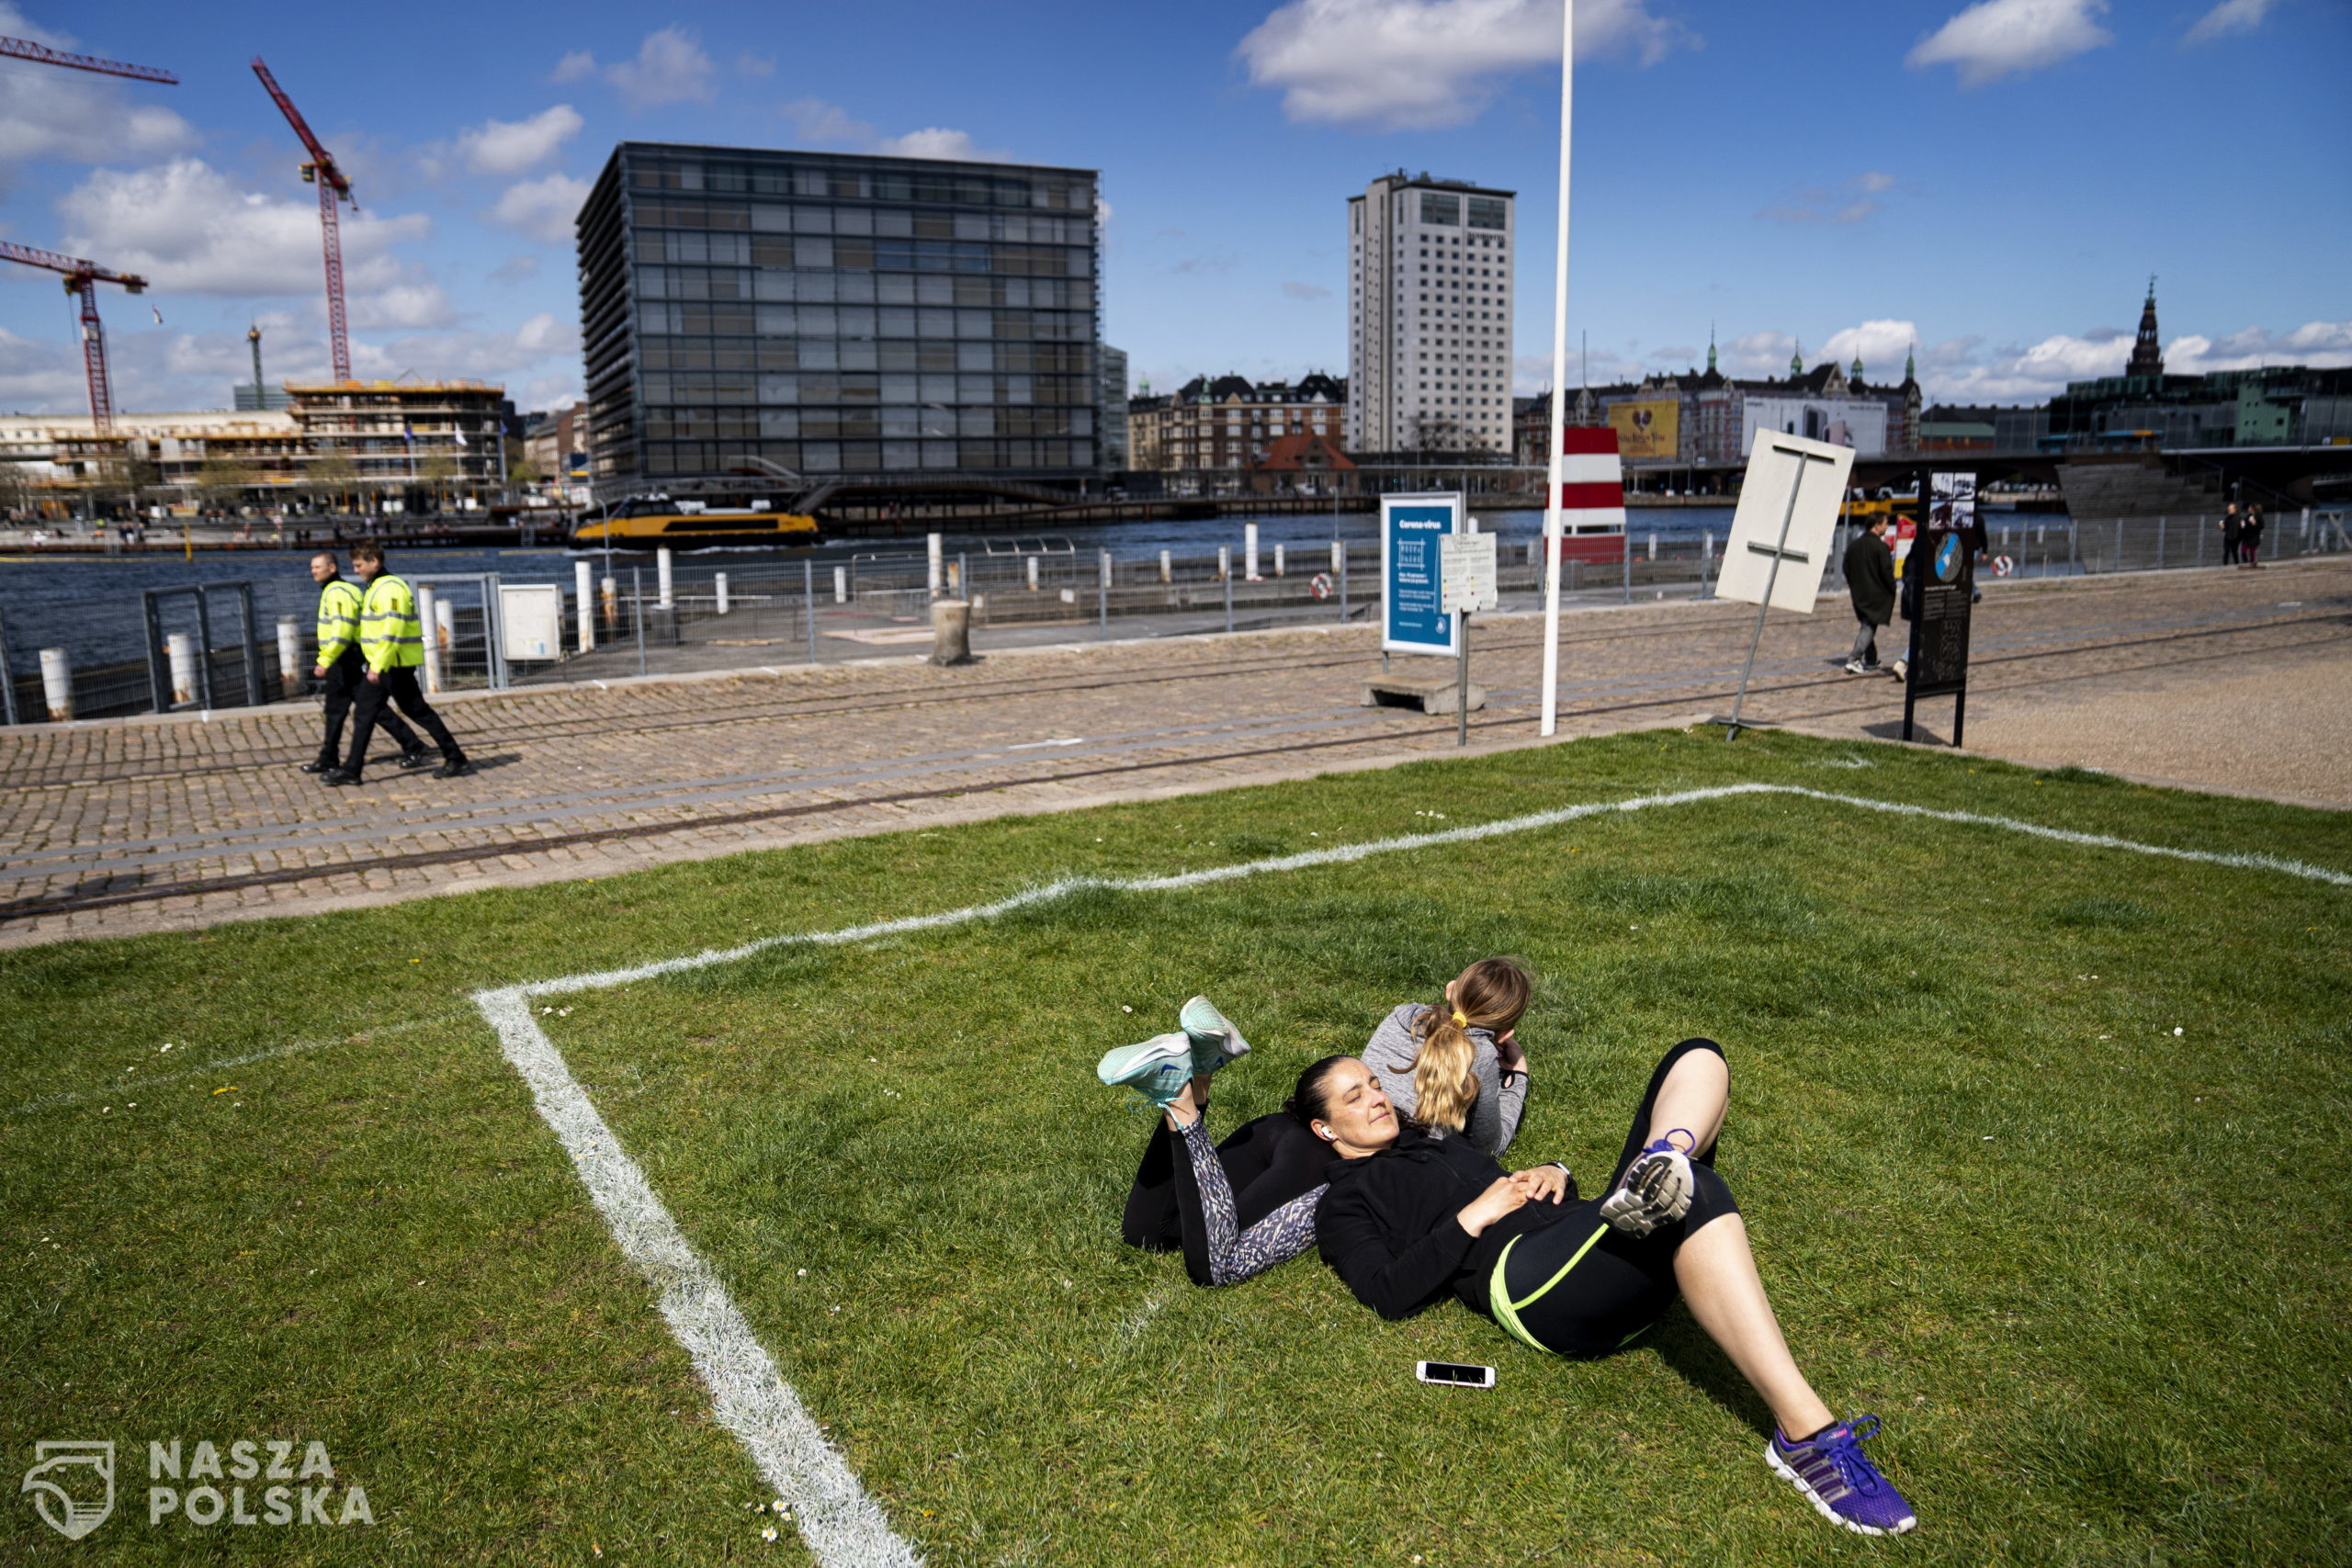 epa08398886 Livia and Lorenza enjoy the sun at Islands Brygge in Copenhagen, Denmark, 03 May 2020. Marked areas of 40 m2 in which only 10 people can stay, will help citizens keep distance to prevent the spread of SARS-CoV-2 coronavirus which causes the Covid-19 disease. The green area is a favorite place of leisure activities for the residents of Islands Brygge.  EPA/IDA GULDBAEK ARENTSEN  DENMARK OUT  ** NOTE the picture taken with a telephoto lens and the distance between people in the picture can be perceived less than it really is. **  Dostawca: PAP/EPA.